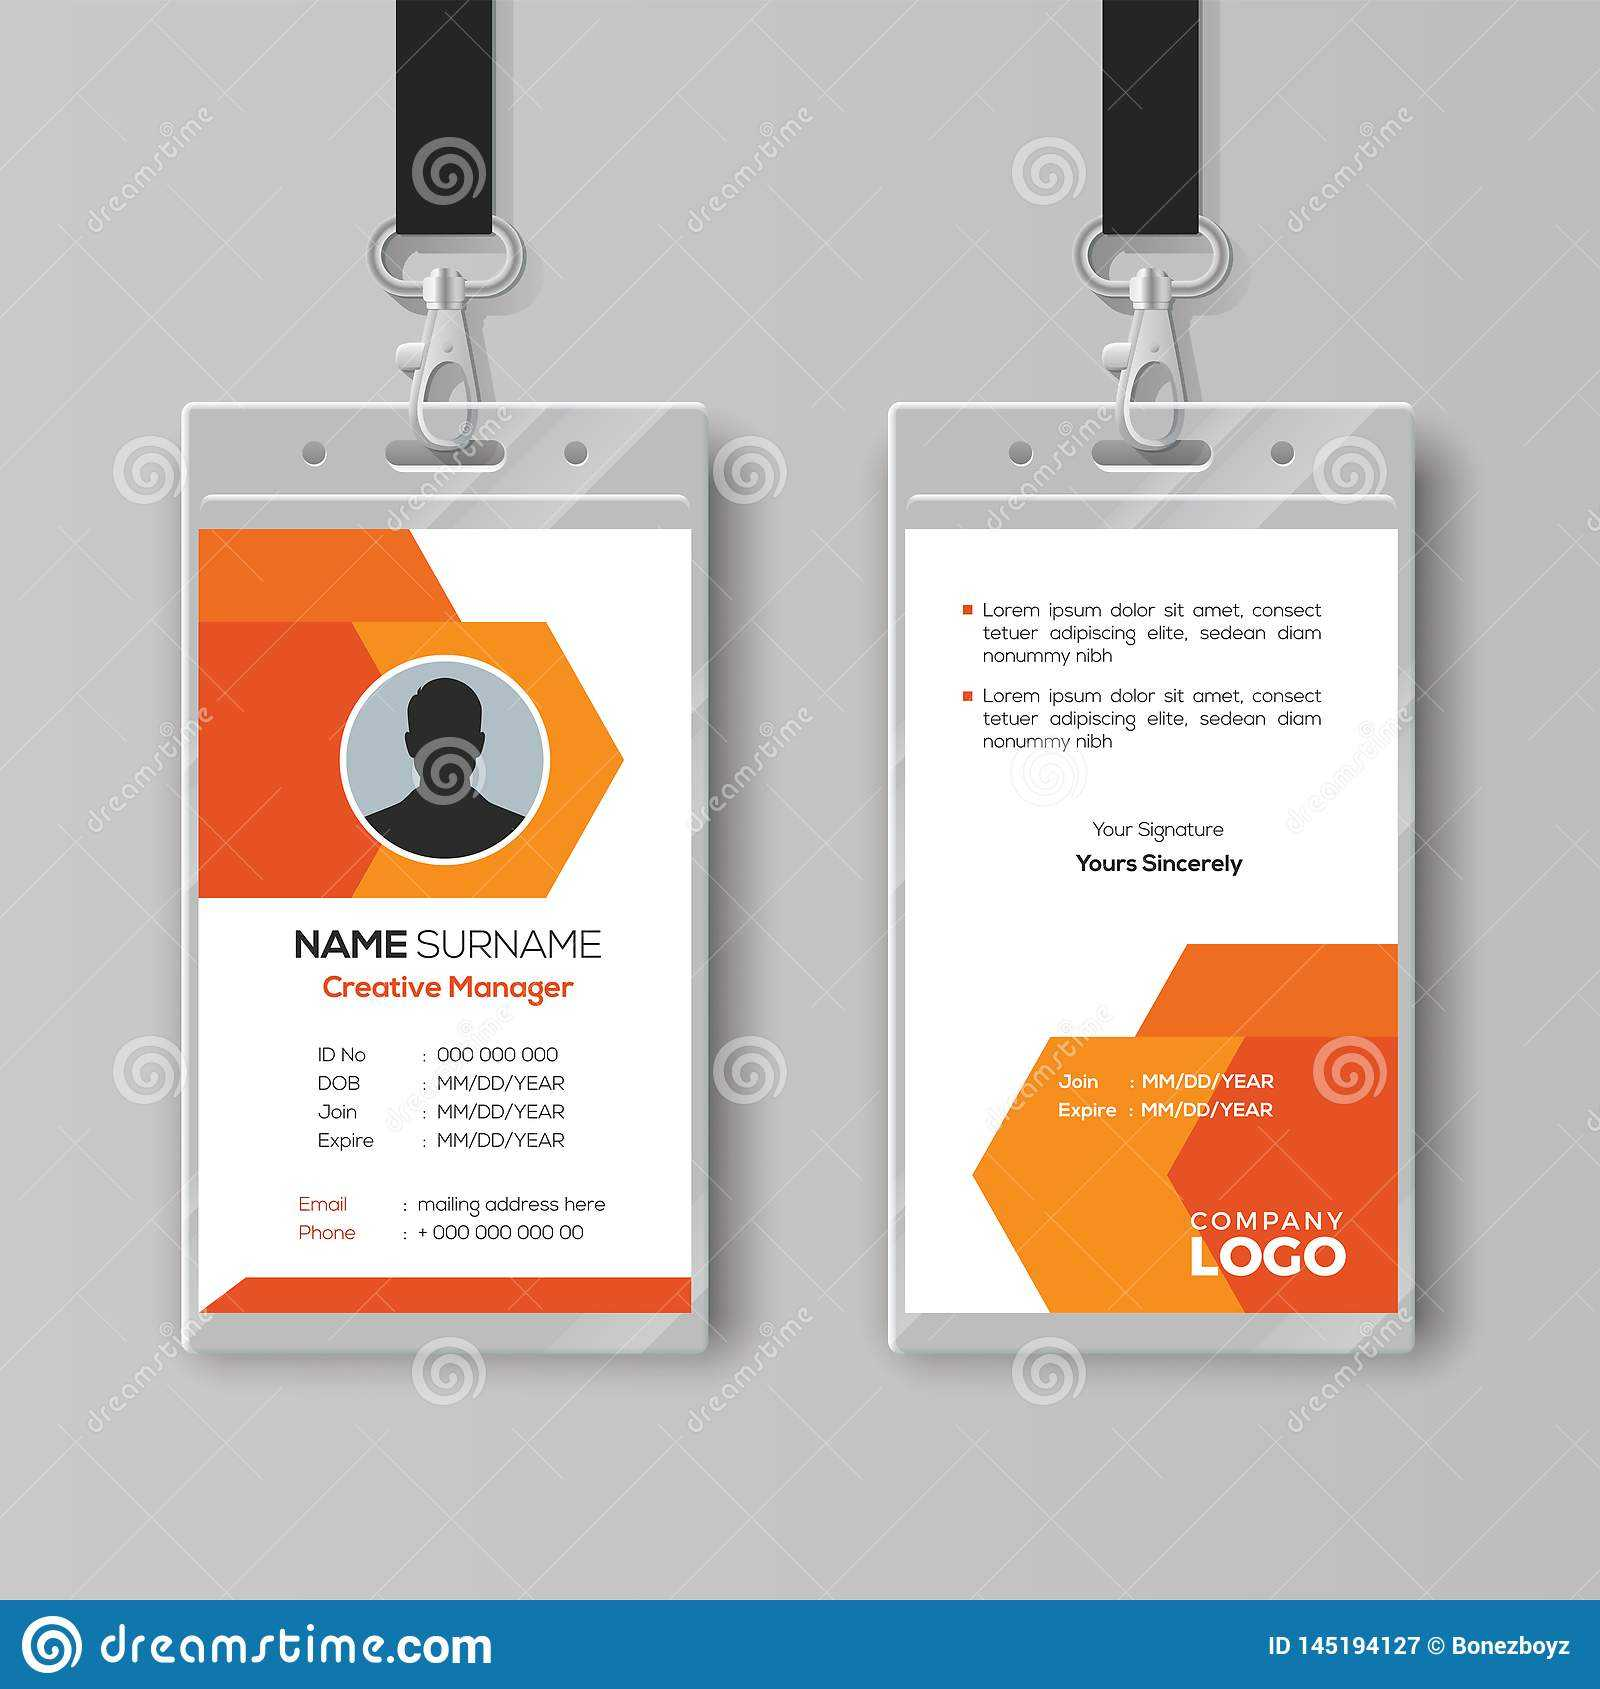 Abstract Orange Id Card Design Template Stock Vector for Company Id Card Design Template